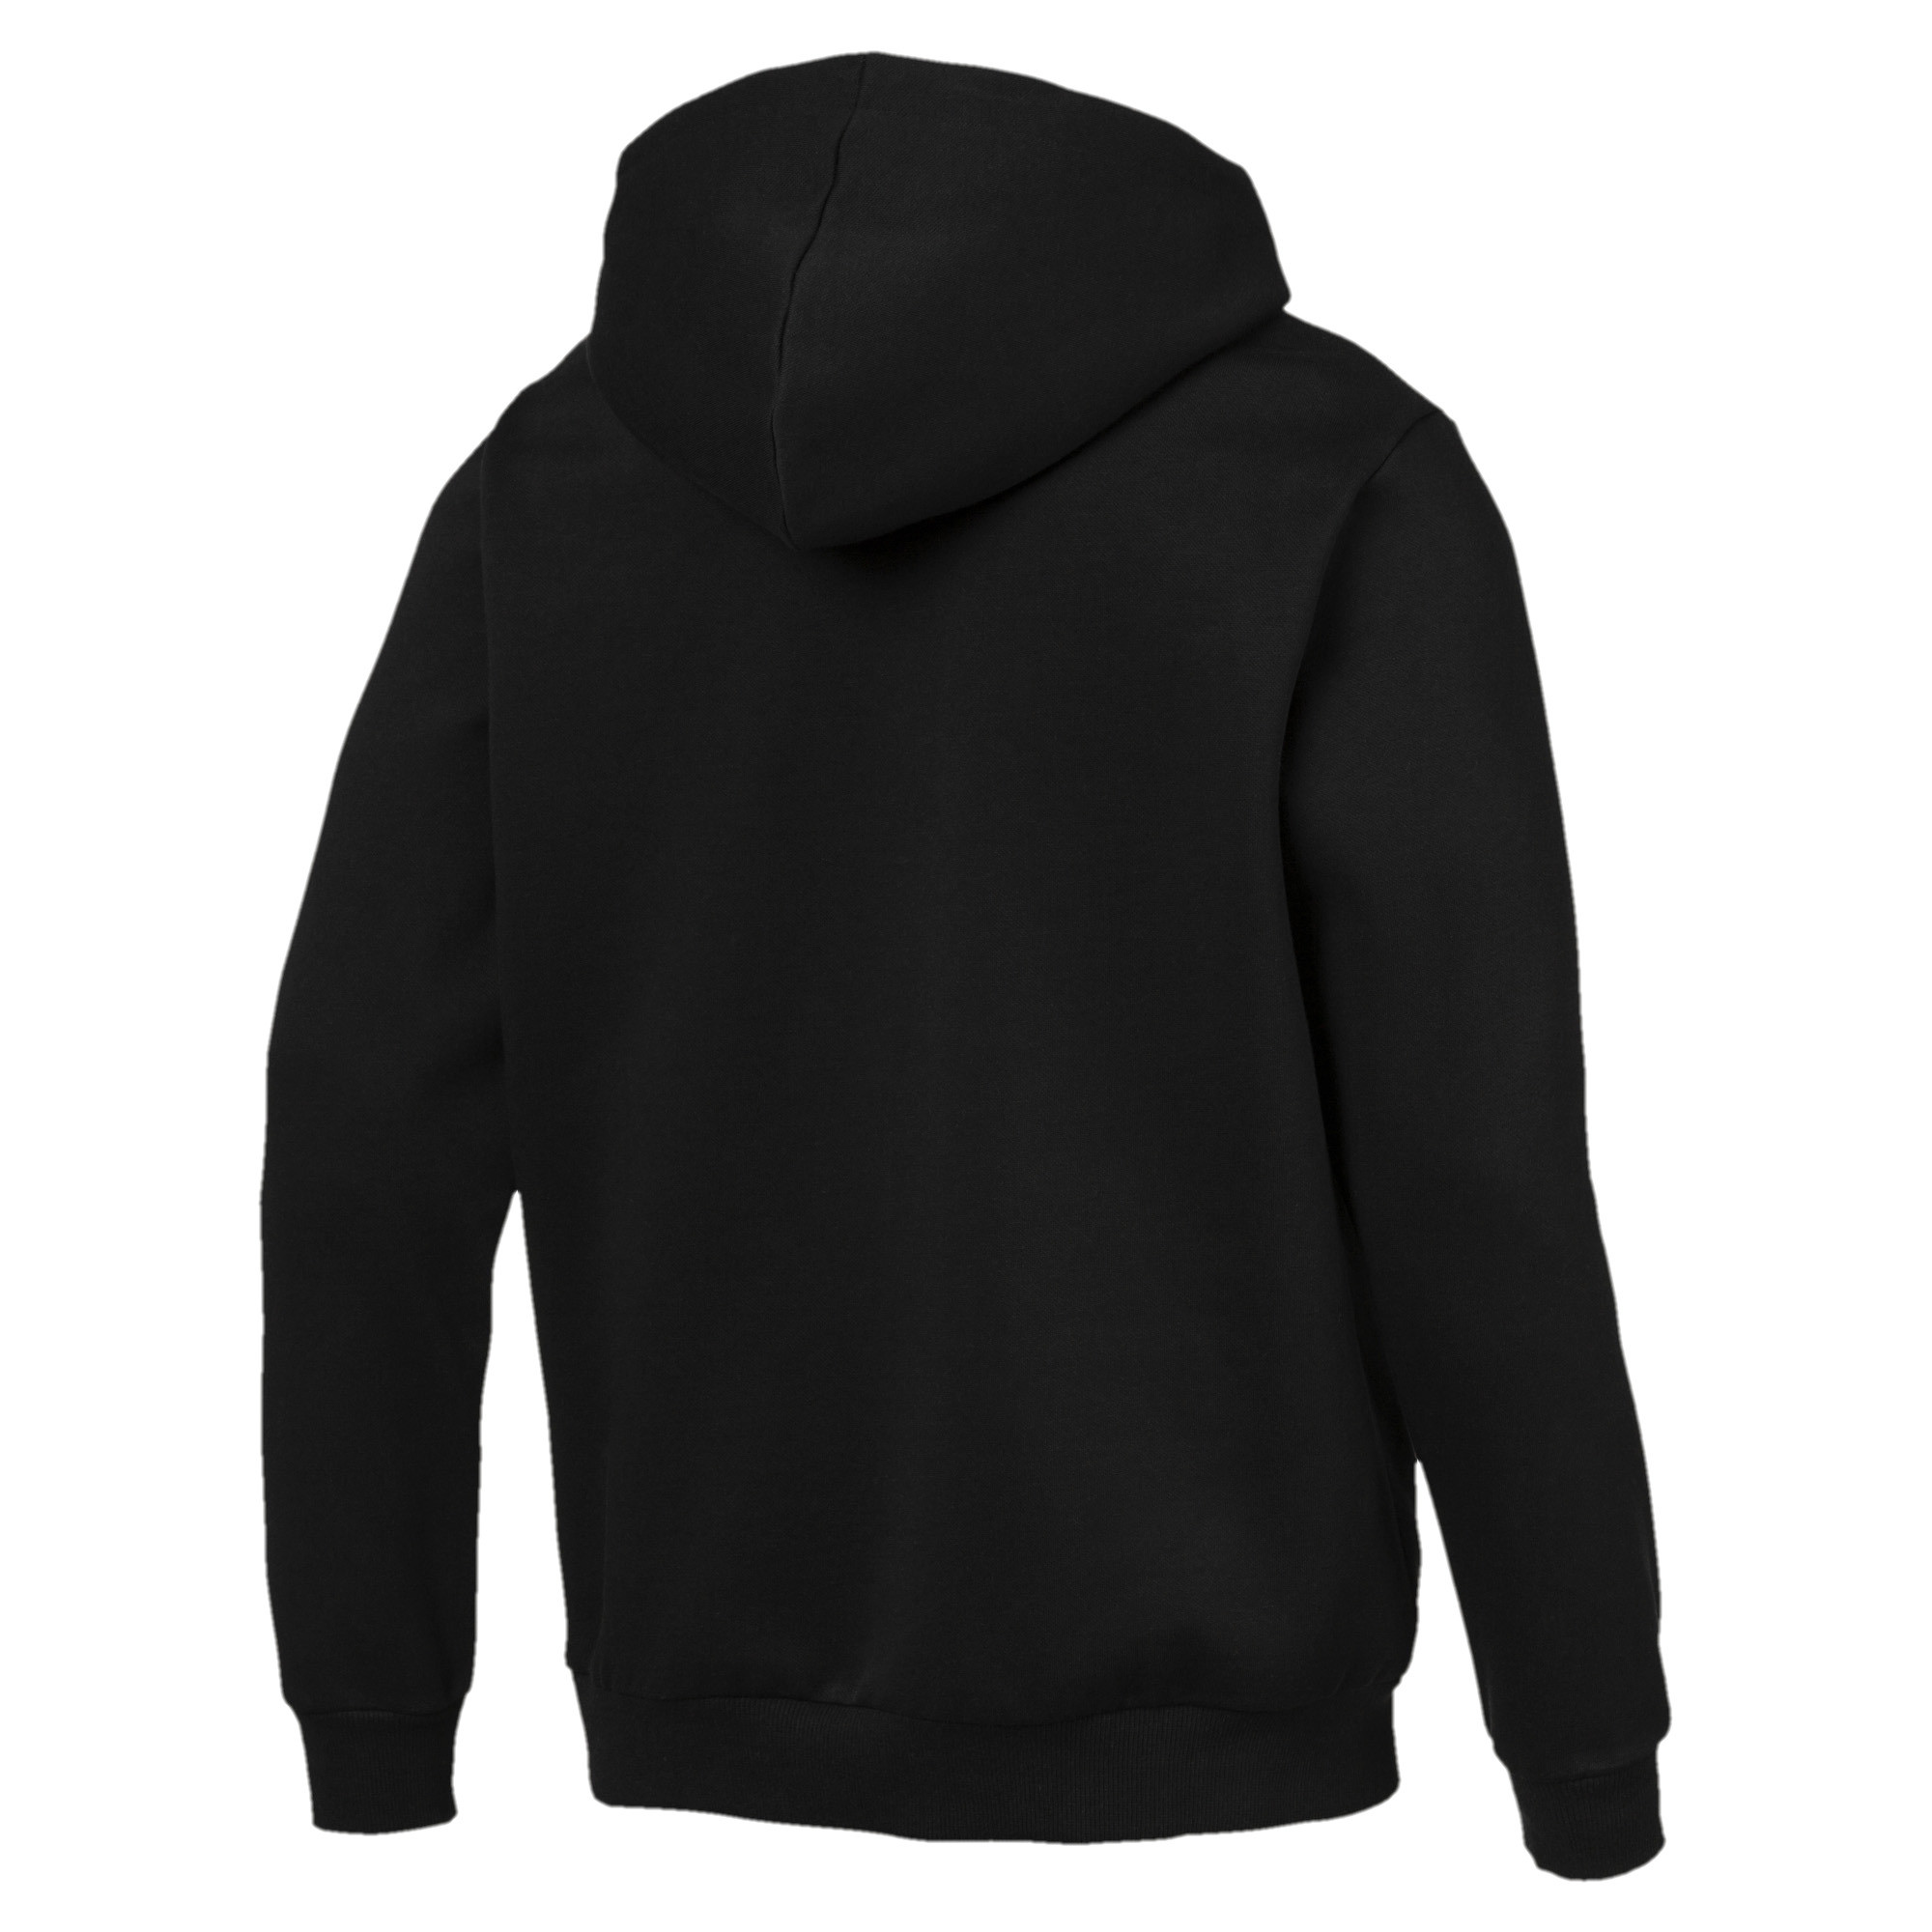 PUMA-Essentials-Men-039-s-Hooded-Fleece-Jacket-Men-Sweat-Basics thumbnail 3